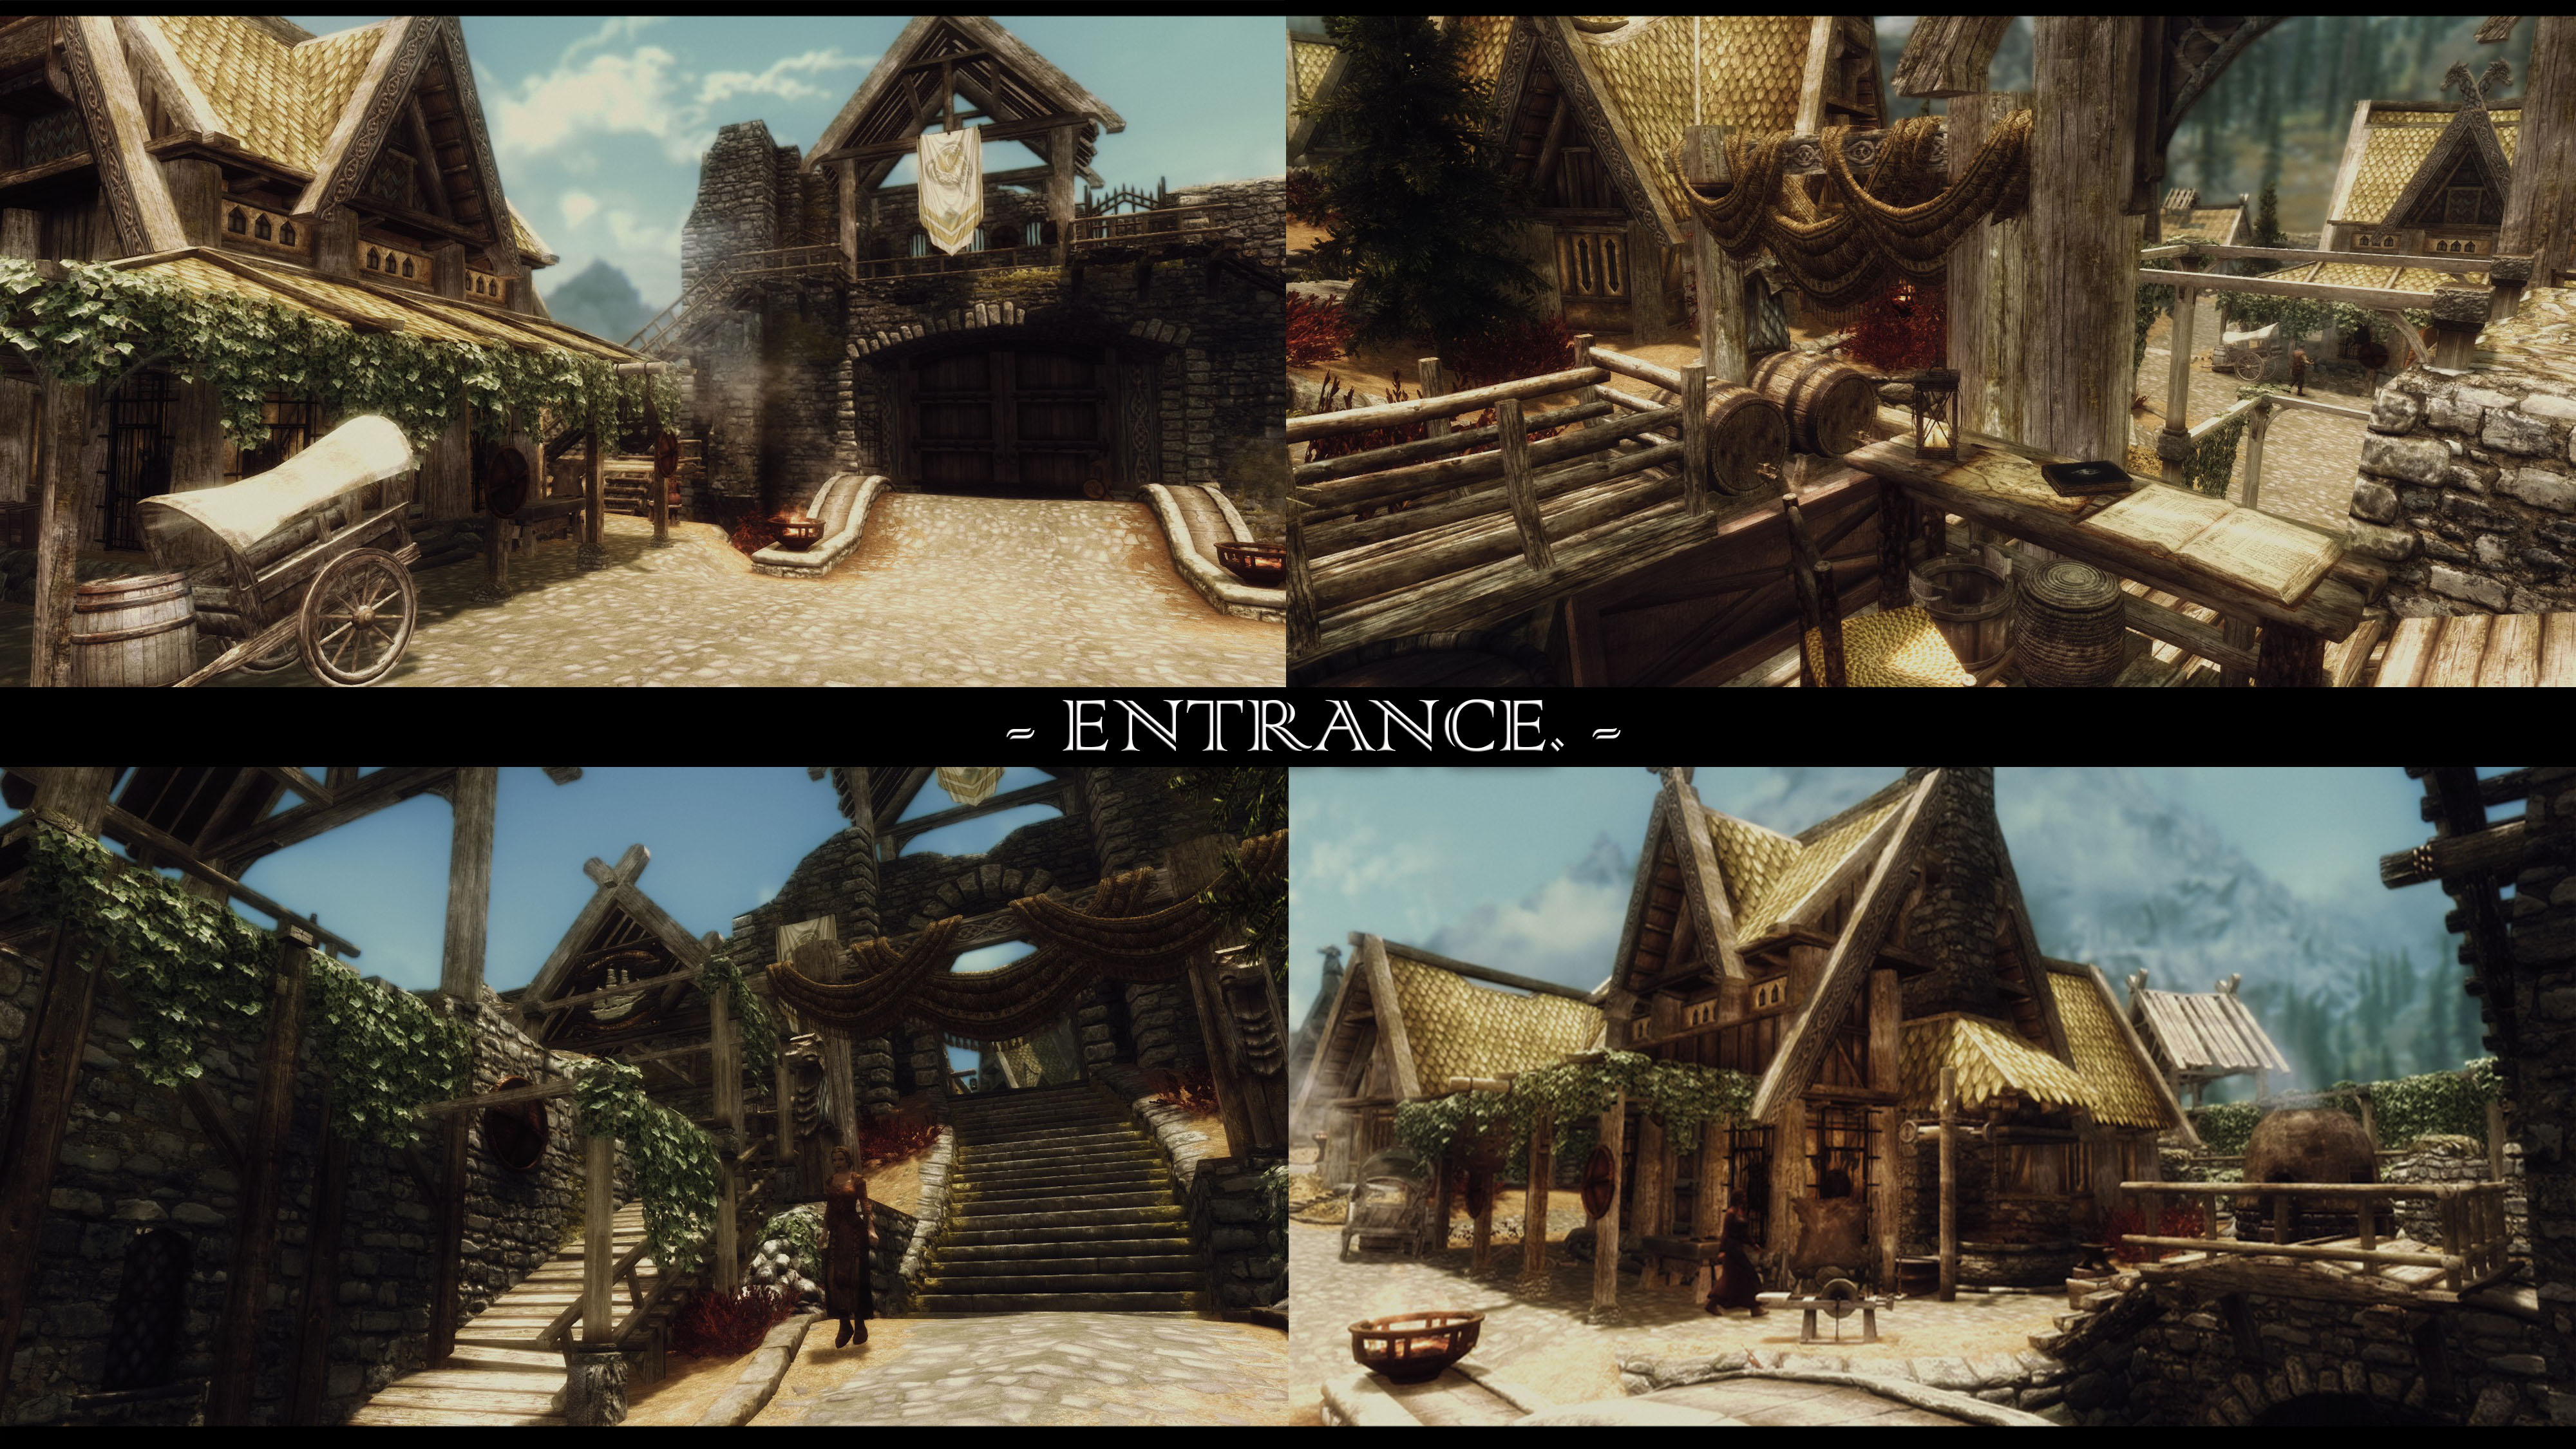 JK's Whiterun entrance